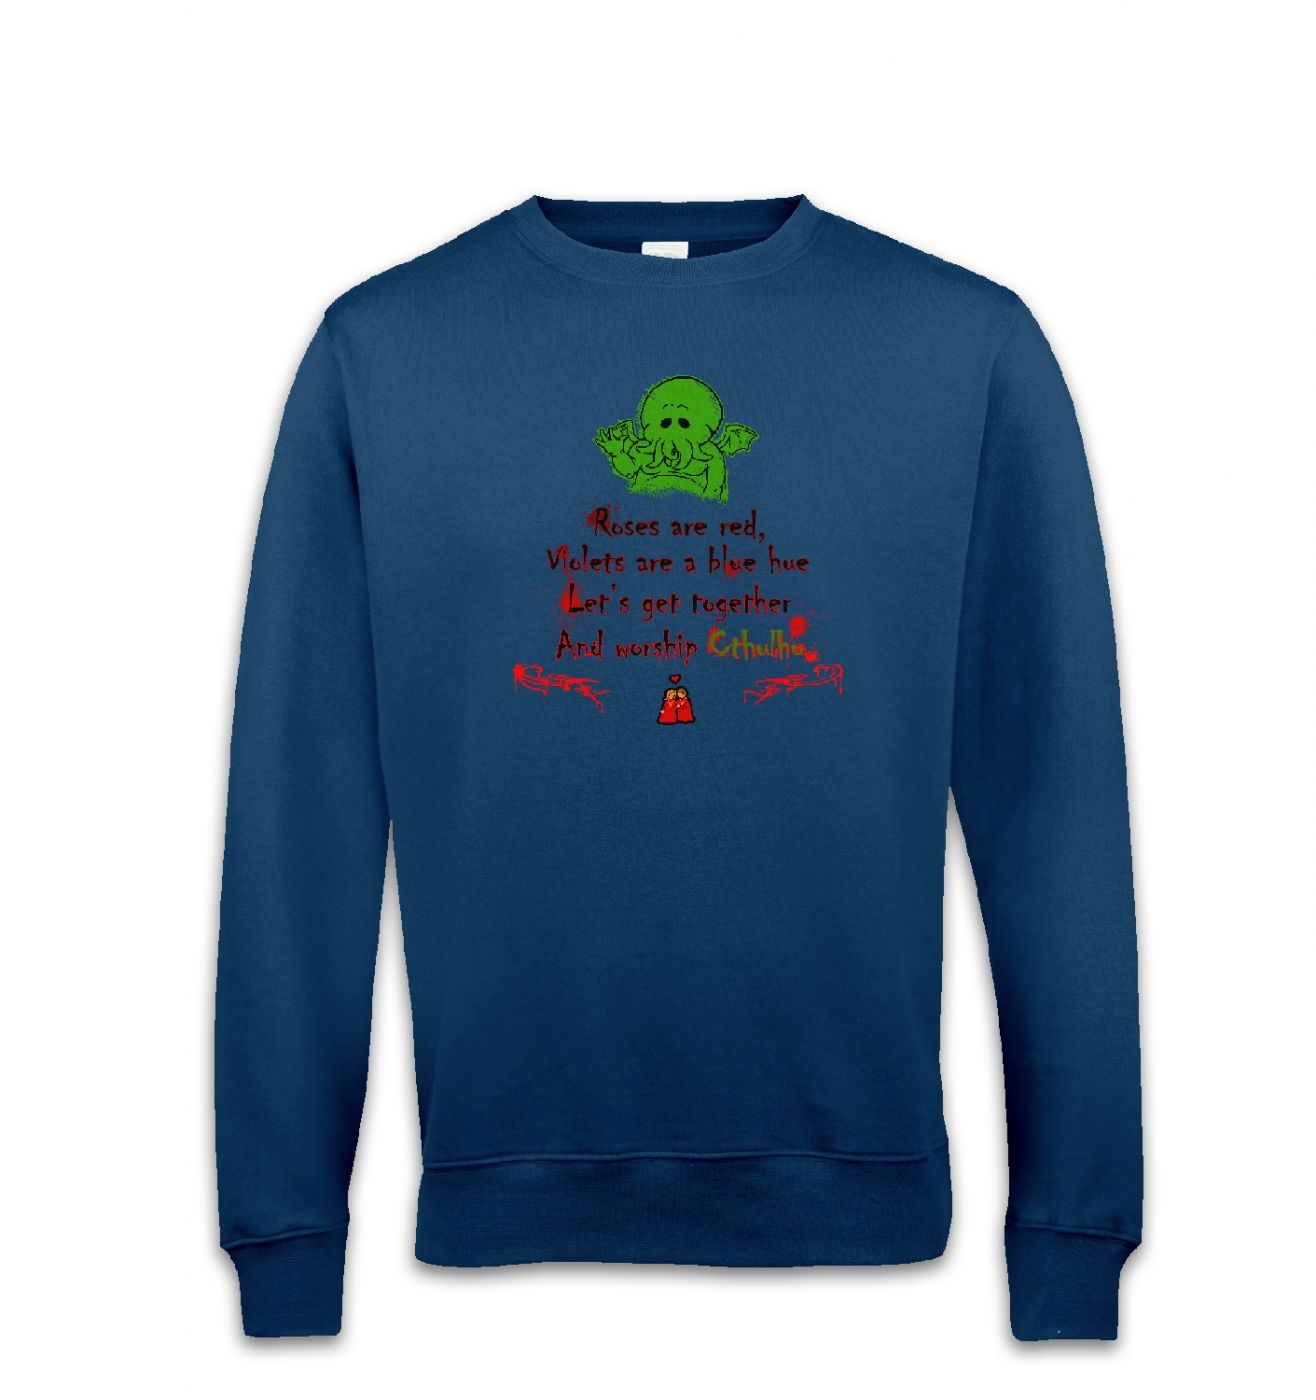 Worship Cthulhu Romantic Poem sweatshirt